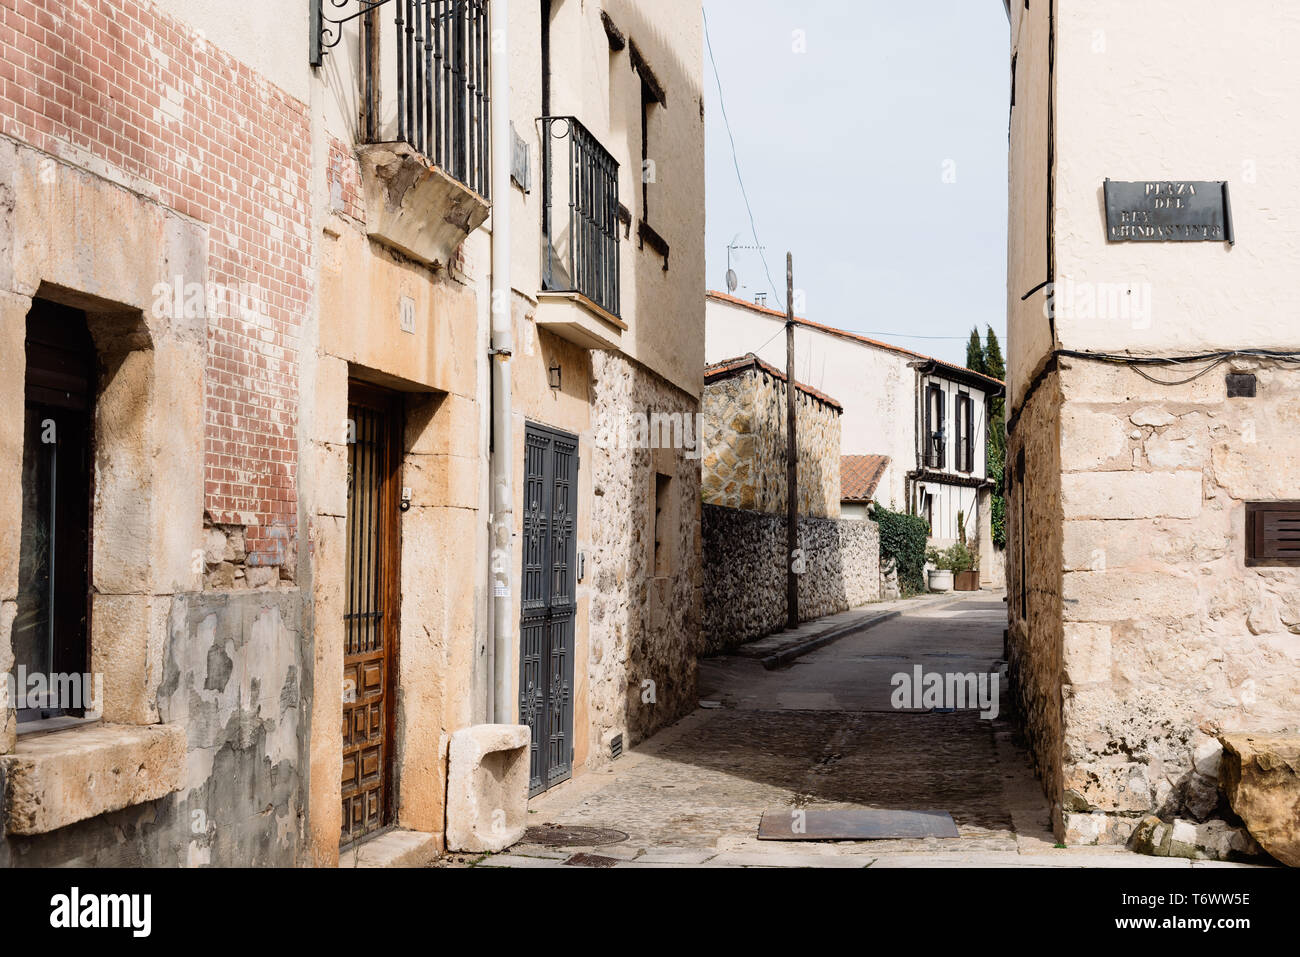 Scenic view of the old medieval town of Covarrubias in Burgos, Castile and Leon - Stock Image